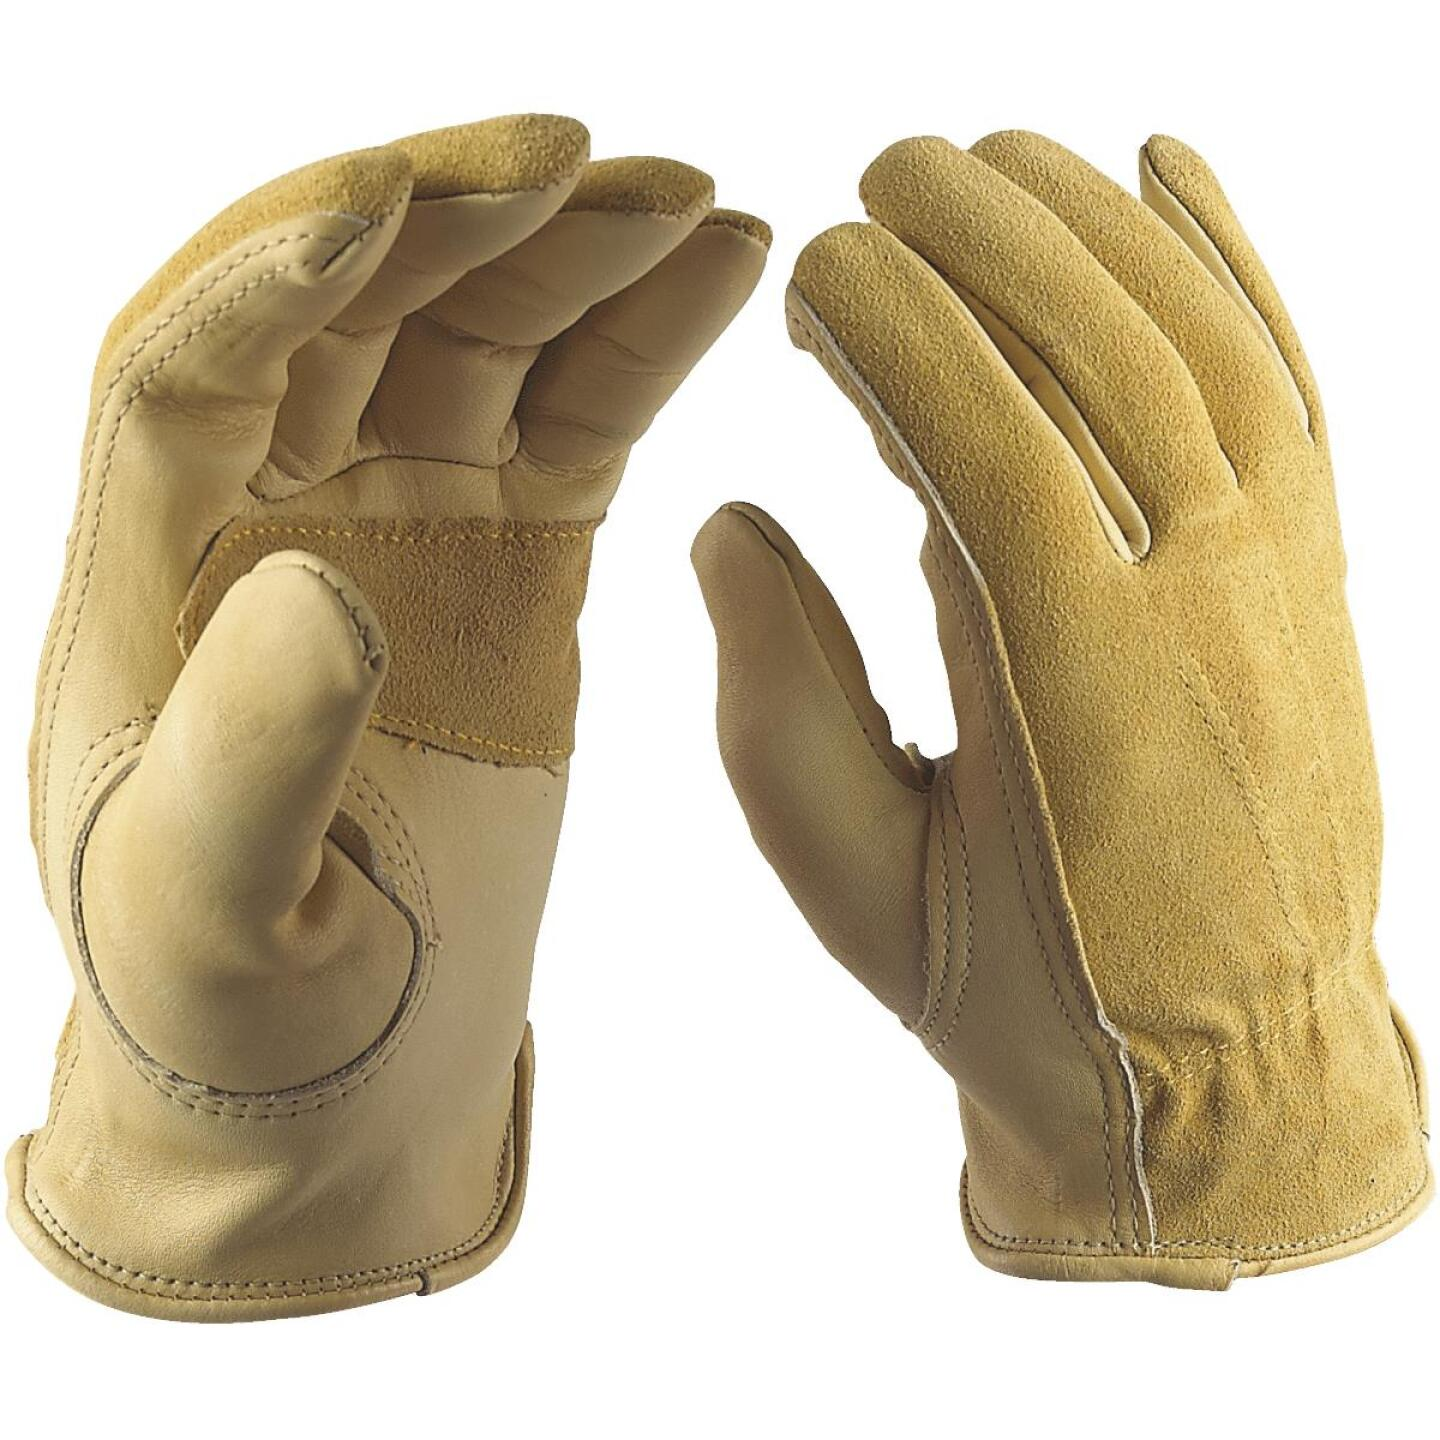 Wells Lamont Women's Medium Grain Cowhide Leather Work Glove Image 2